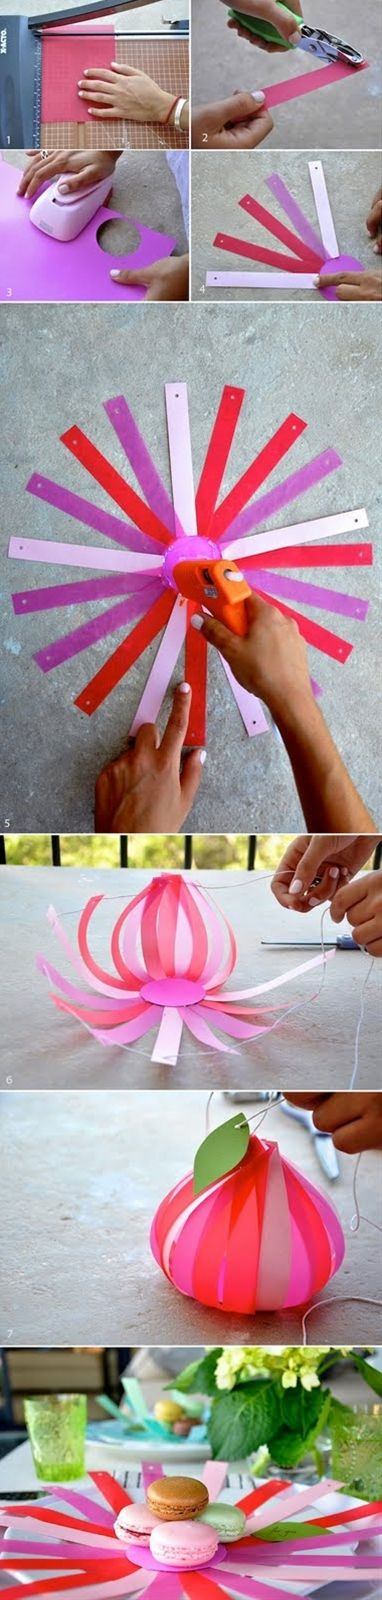 cool gift-wrapping idea for treats!! - Click image to find more DIY & Crafts Pinterest pins